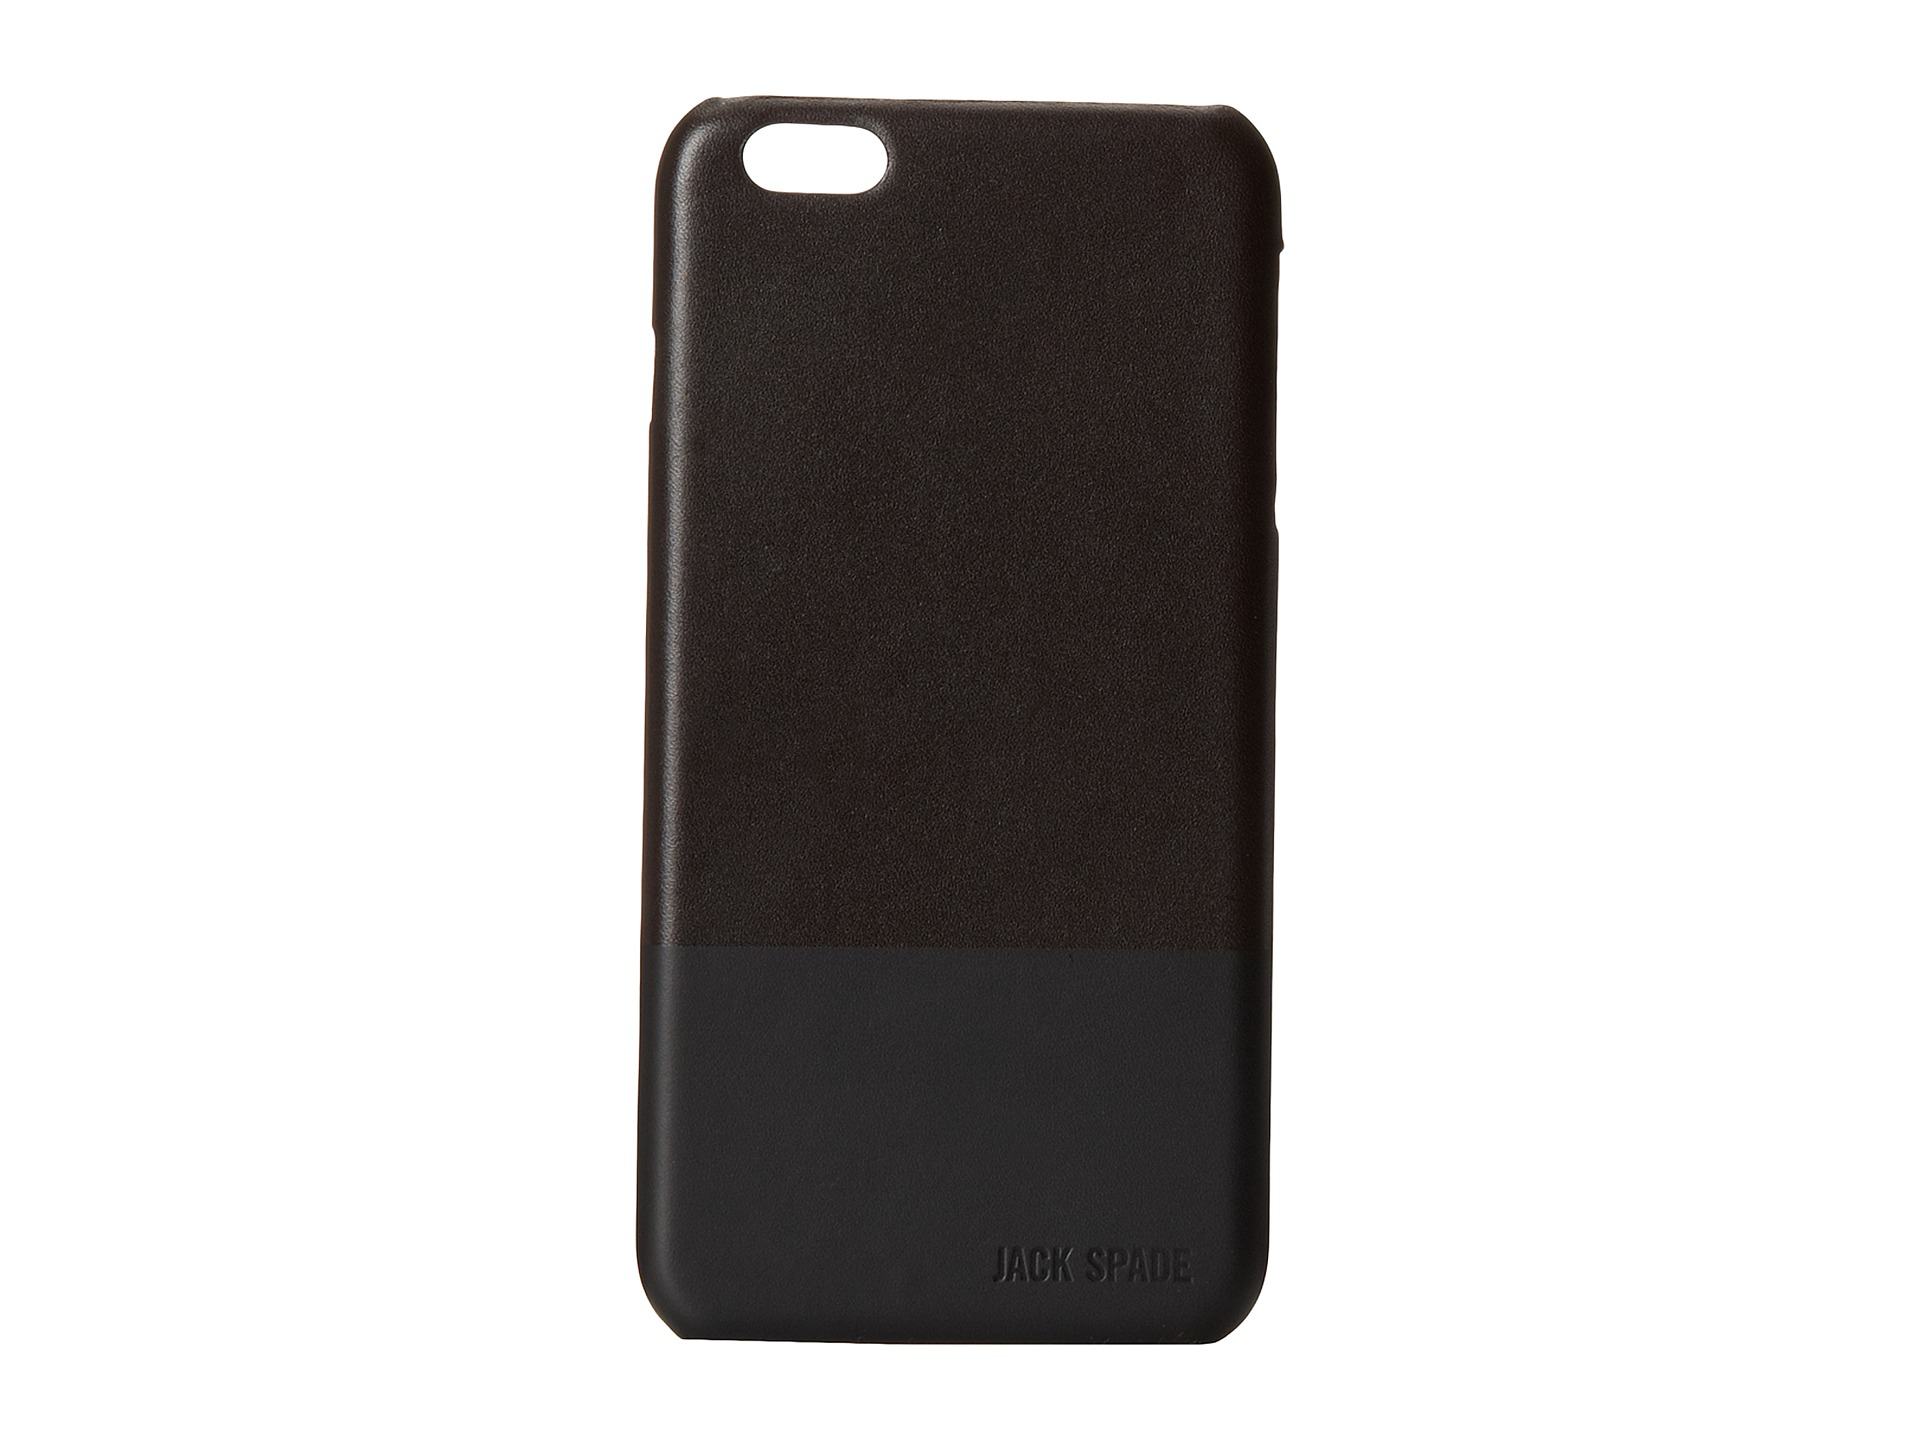 jack spade iphone case spade dipped leather for iphone 6 plus in brown 15588